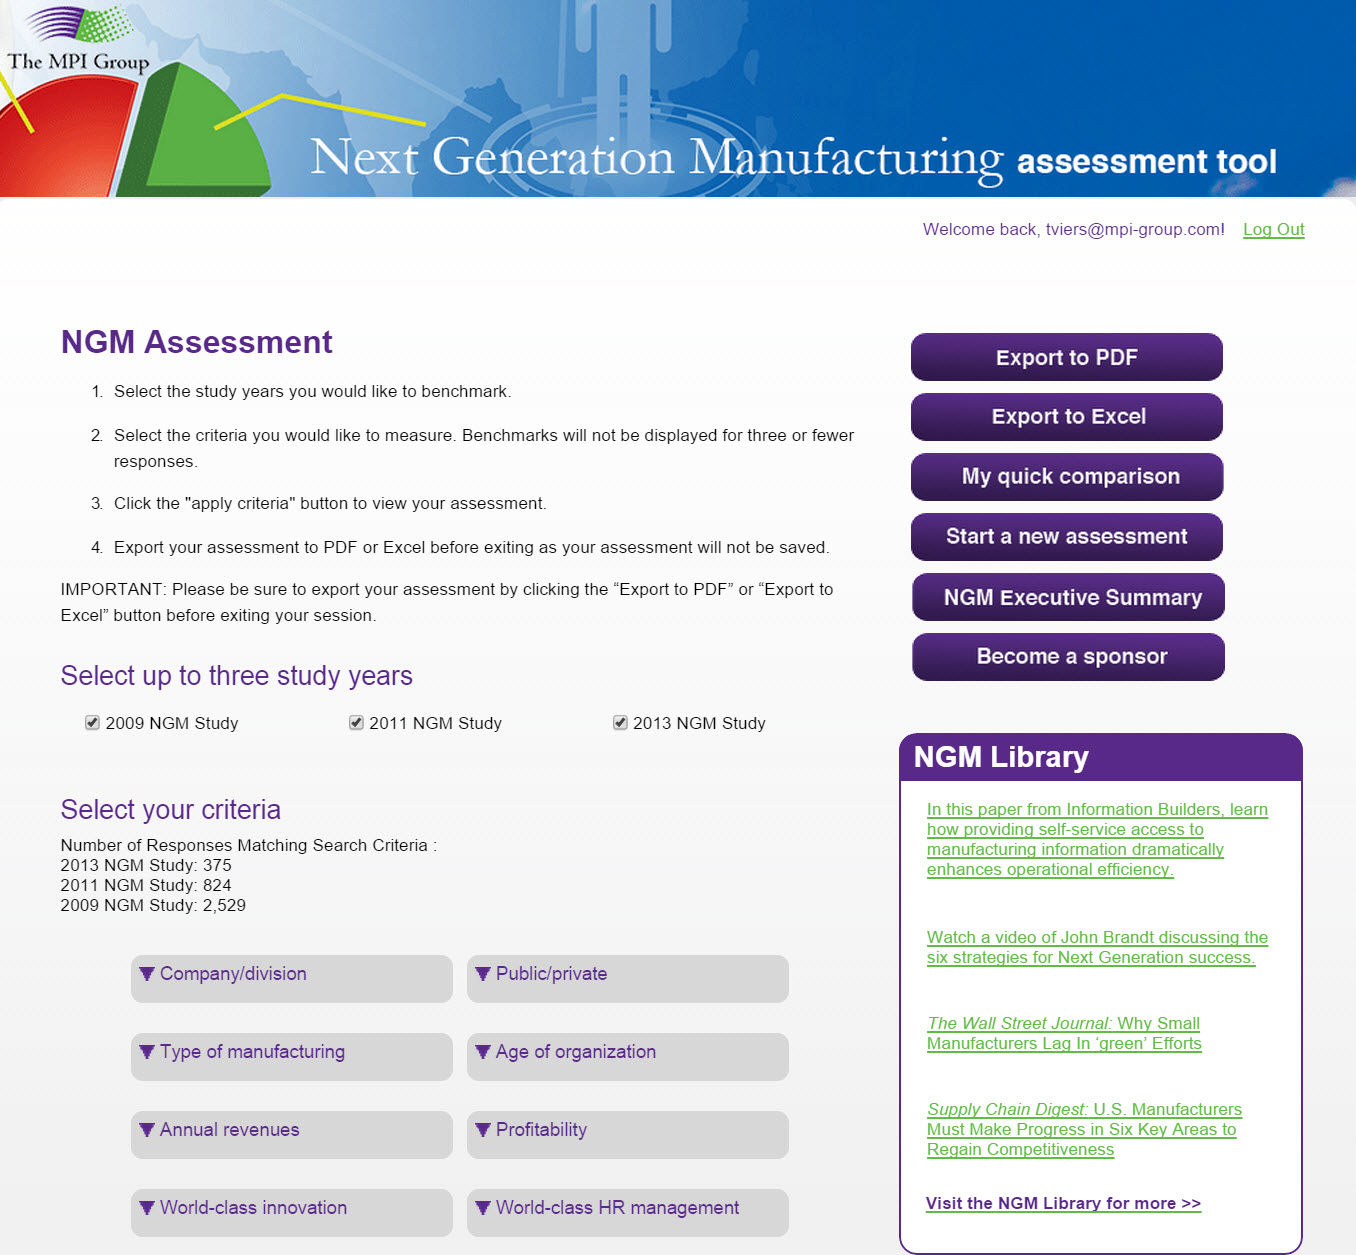 NGM Assessment Tool - The MPI Group